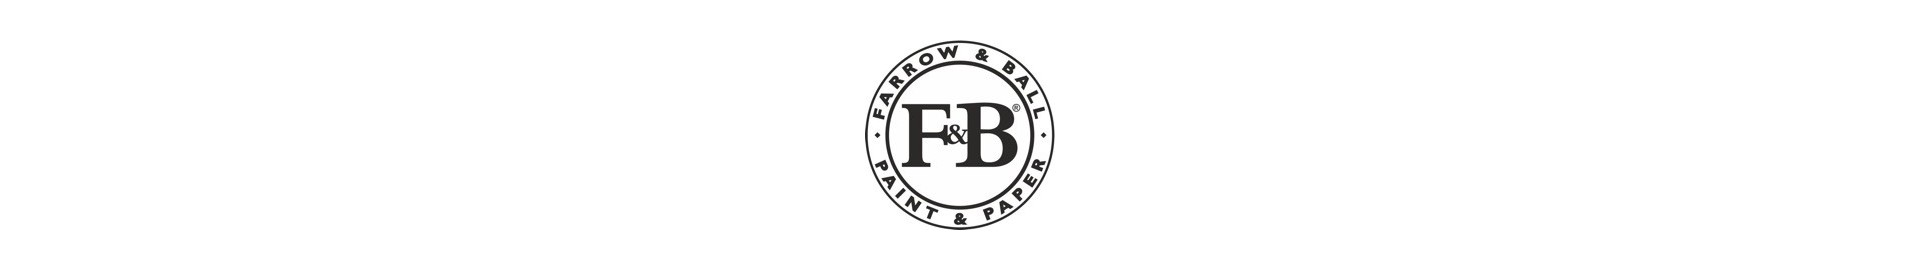 Papiers peints Farrow & Ball